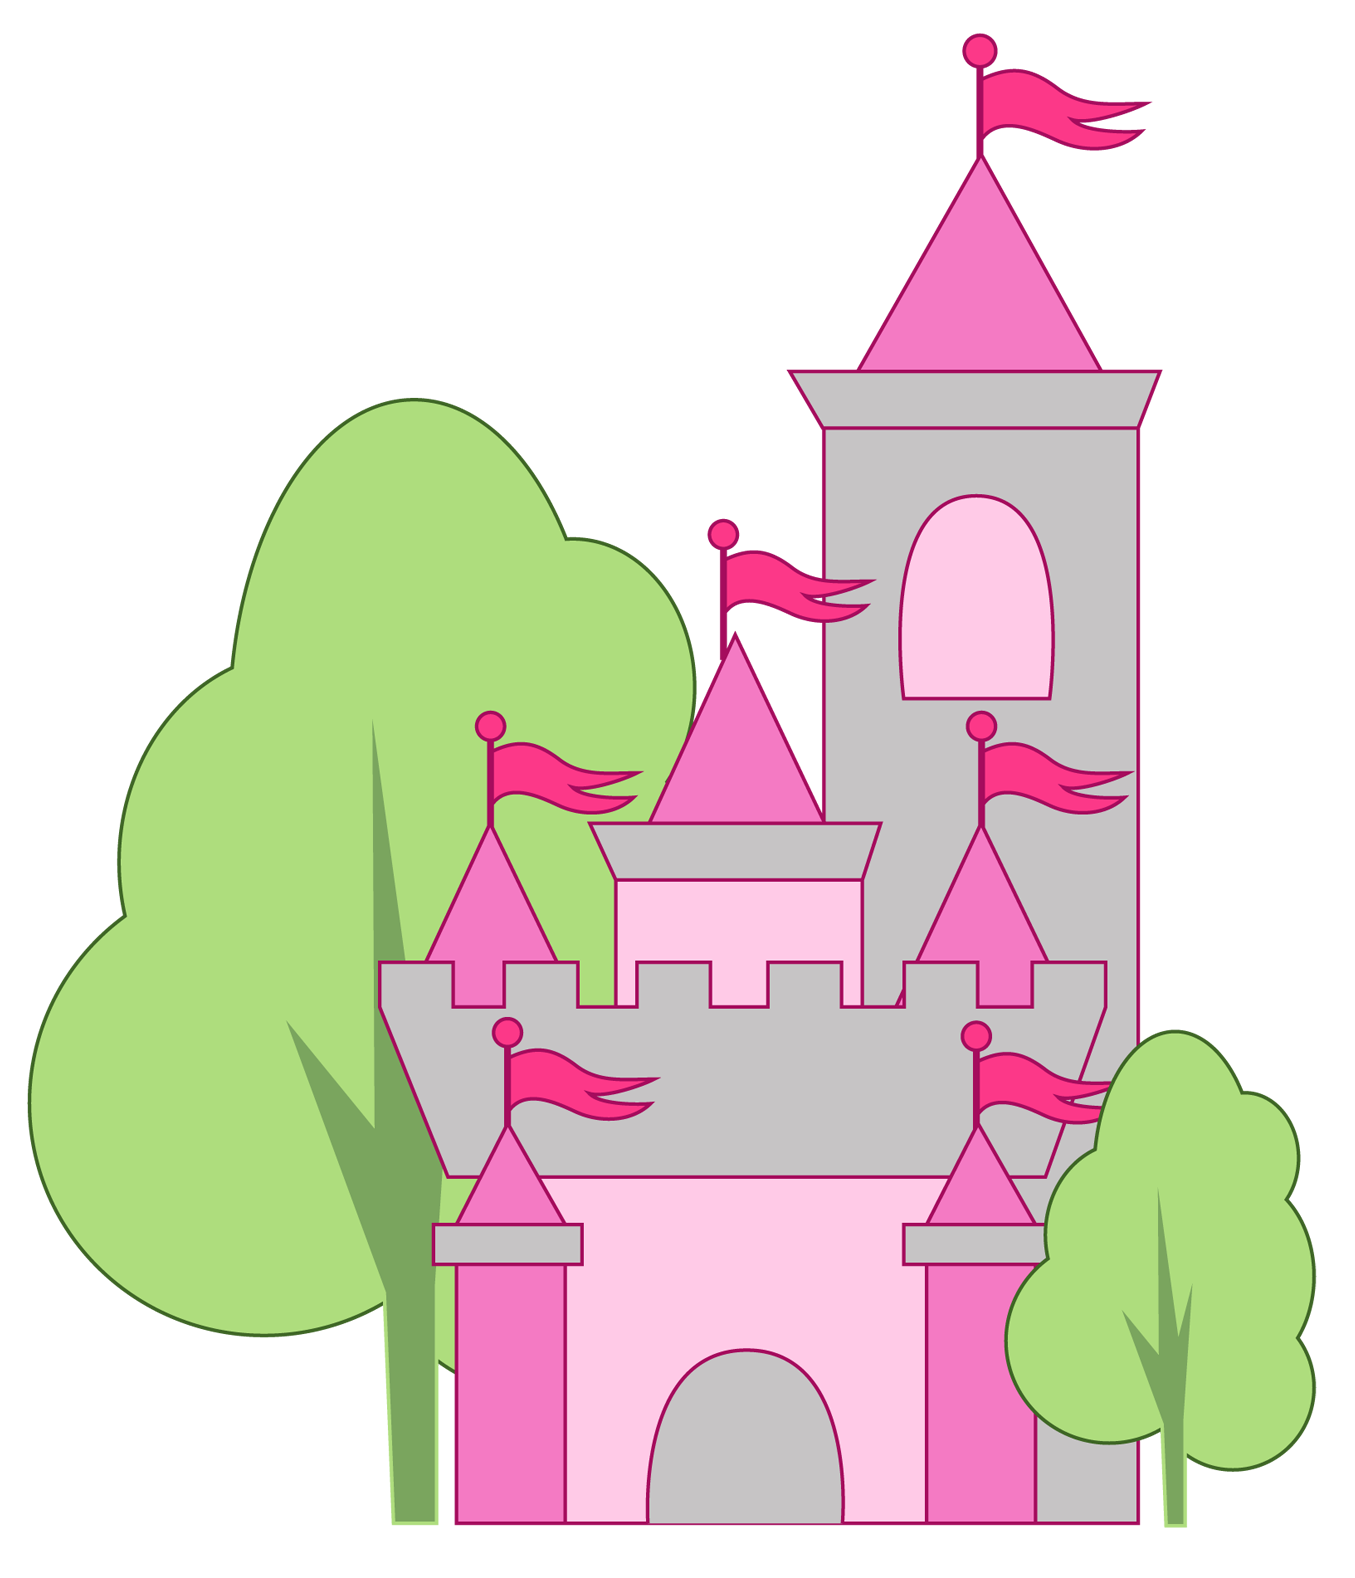 Princess Castle Clipart at GetDrawings.com   Free for personal use ...